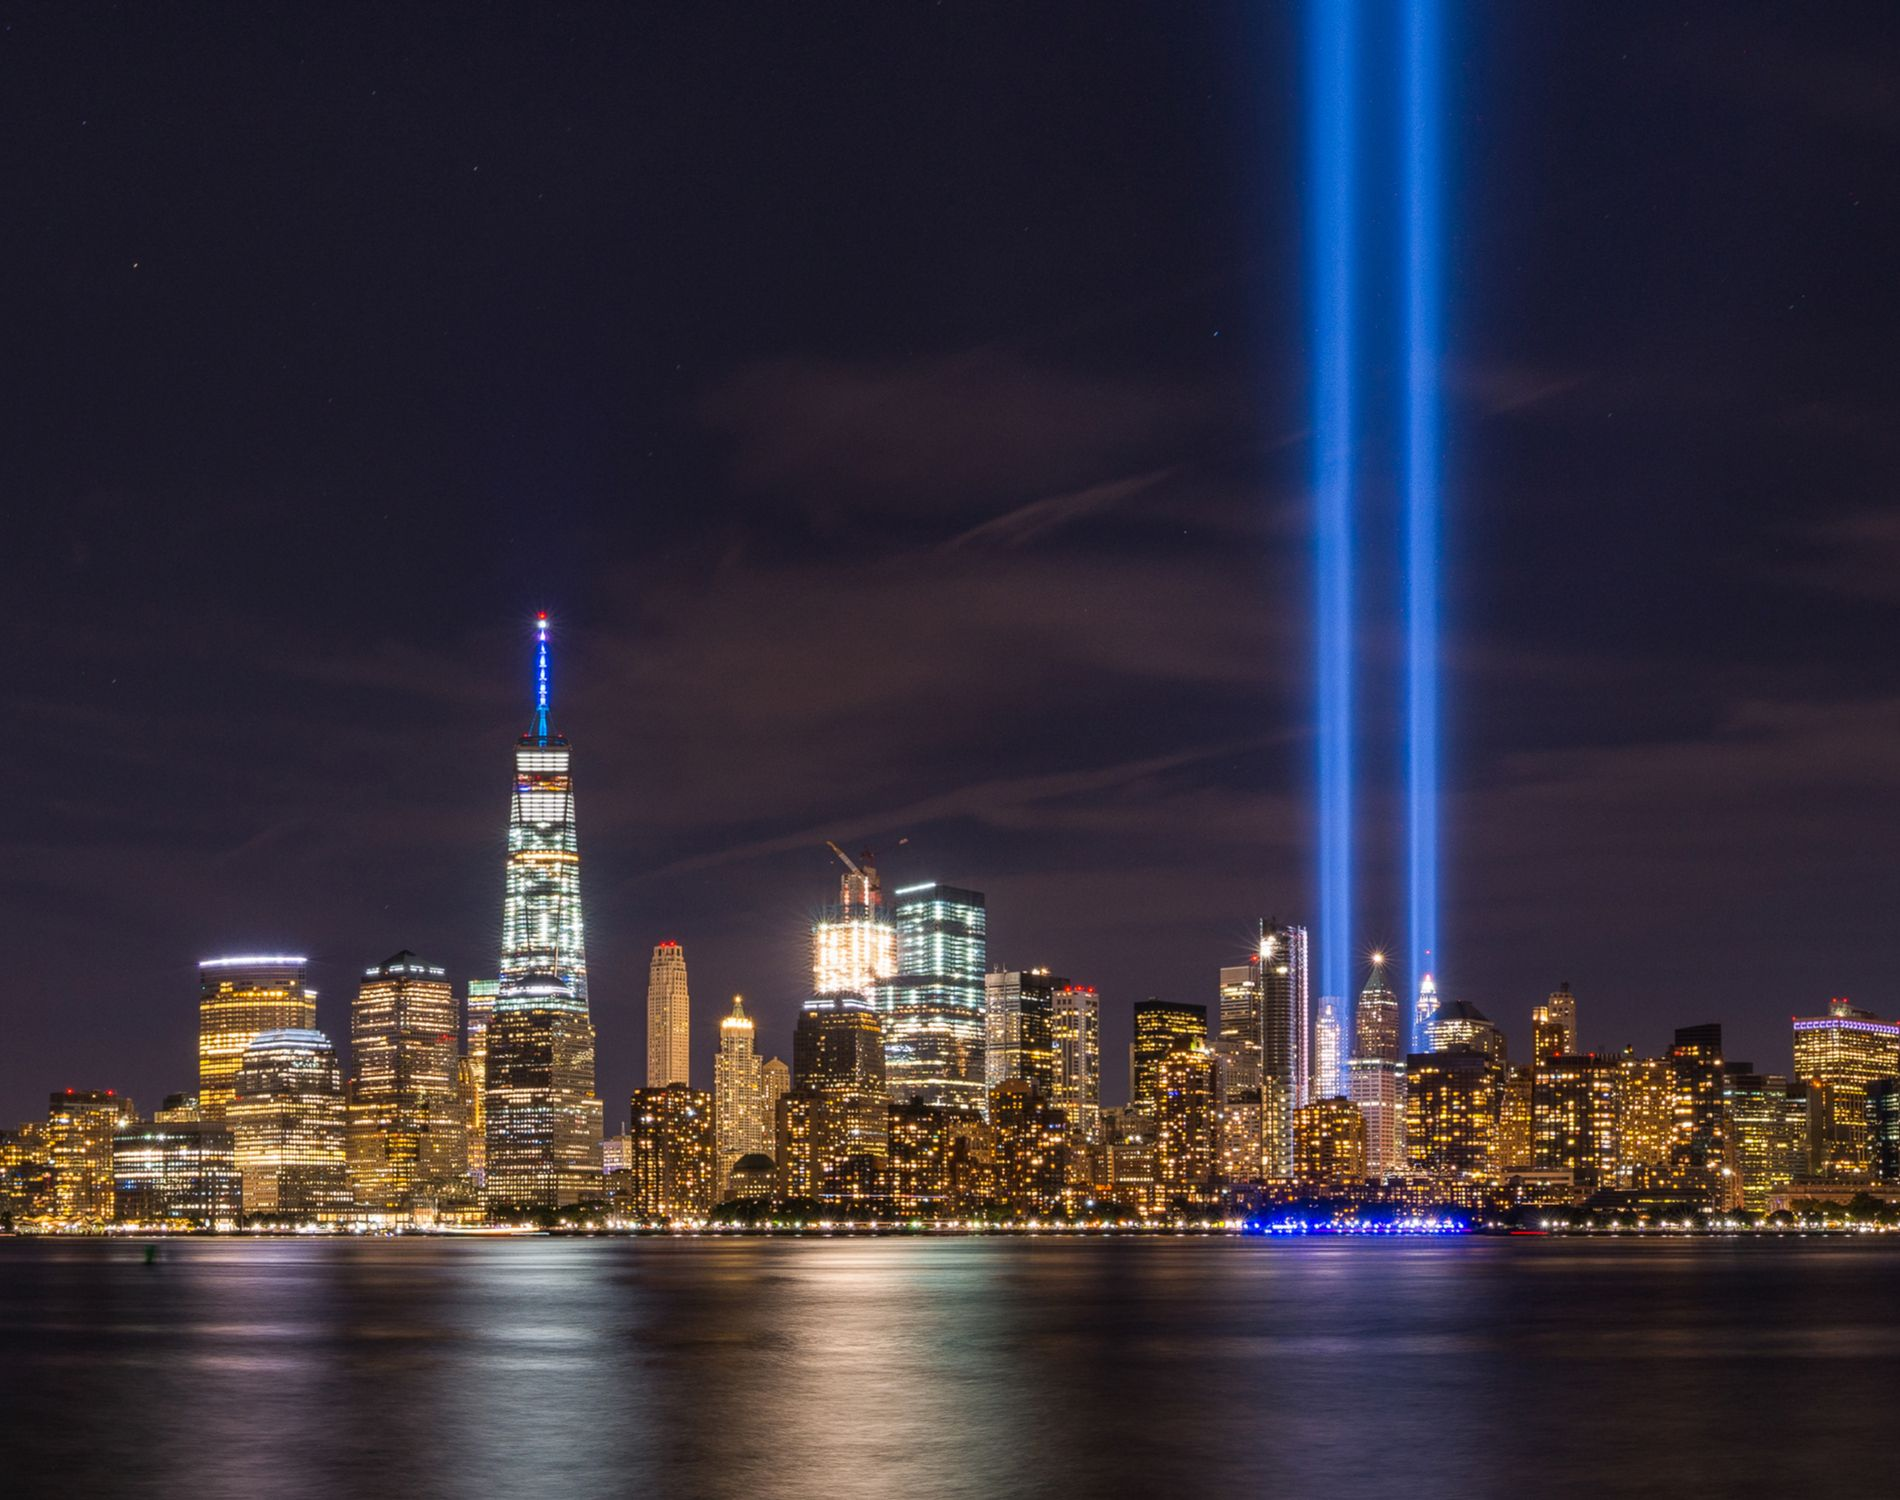 September 11: No Expiration Date for Those Near Ground Zero - The Myeloma Crowd